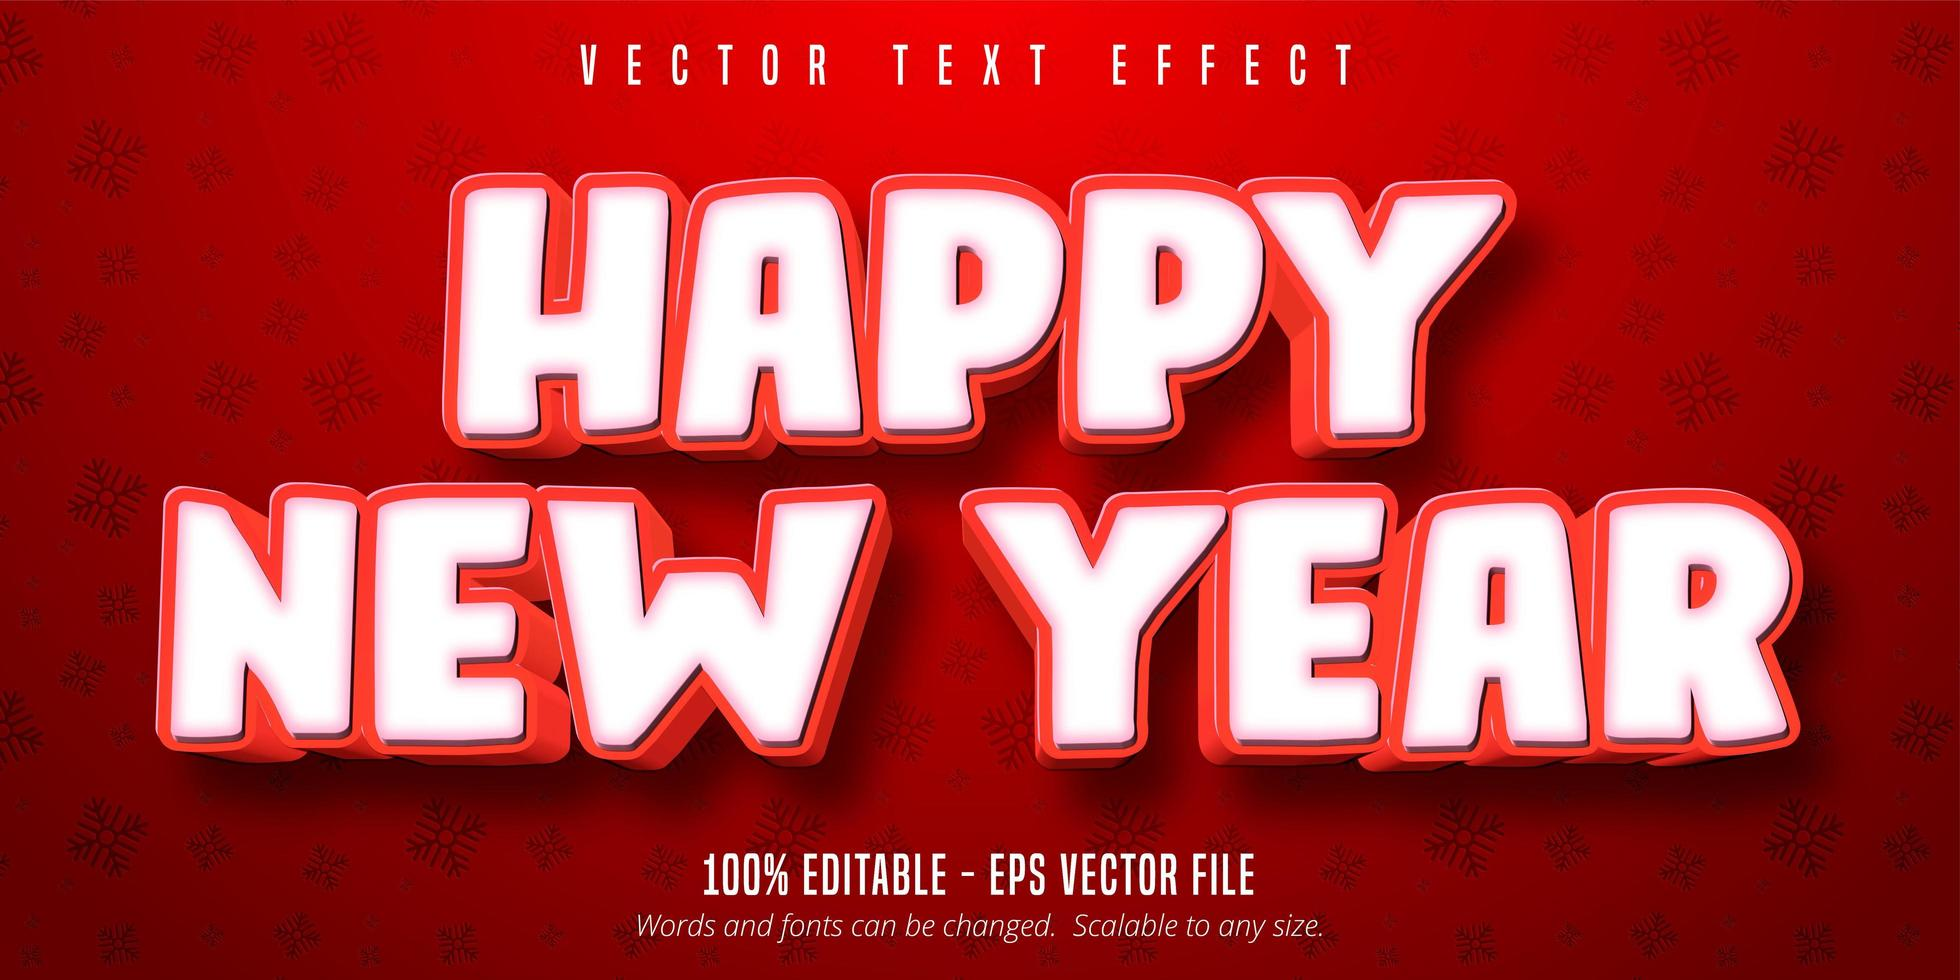 Happy new year text effect vector